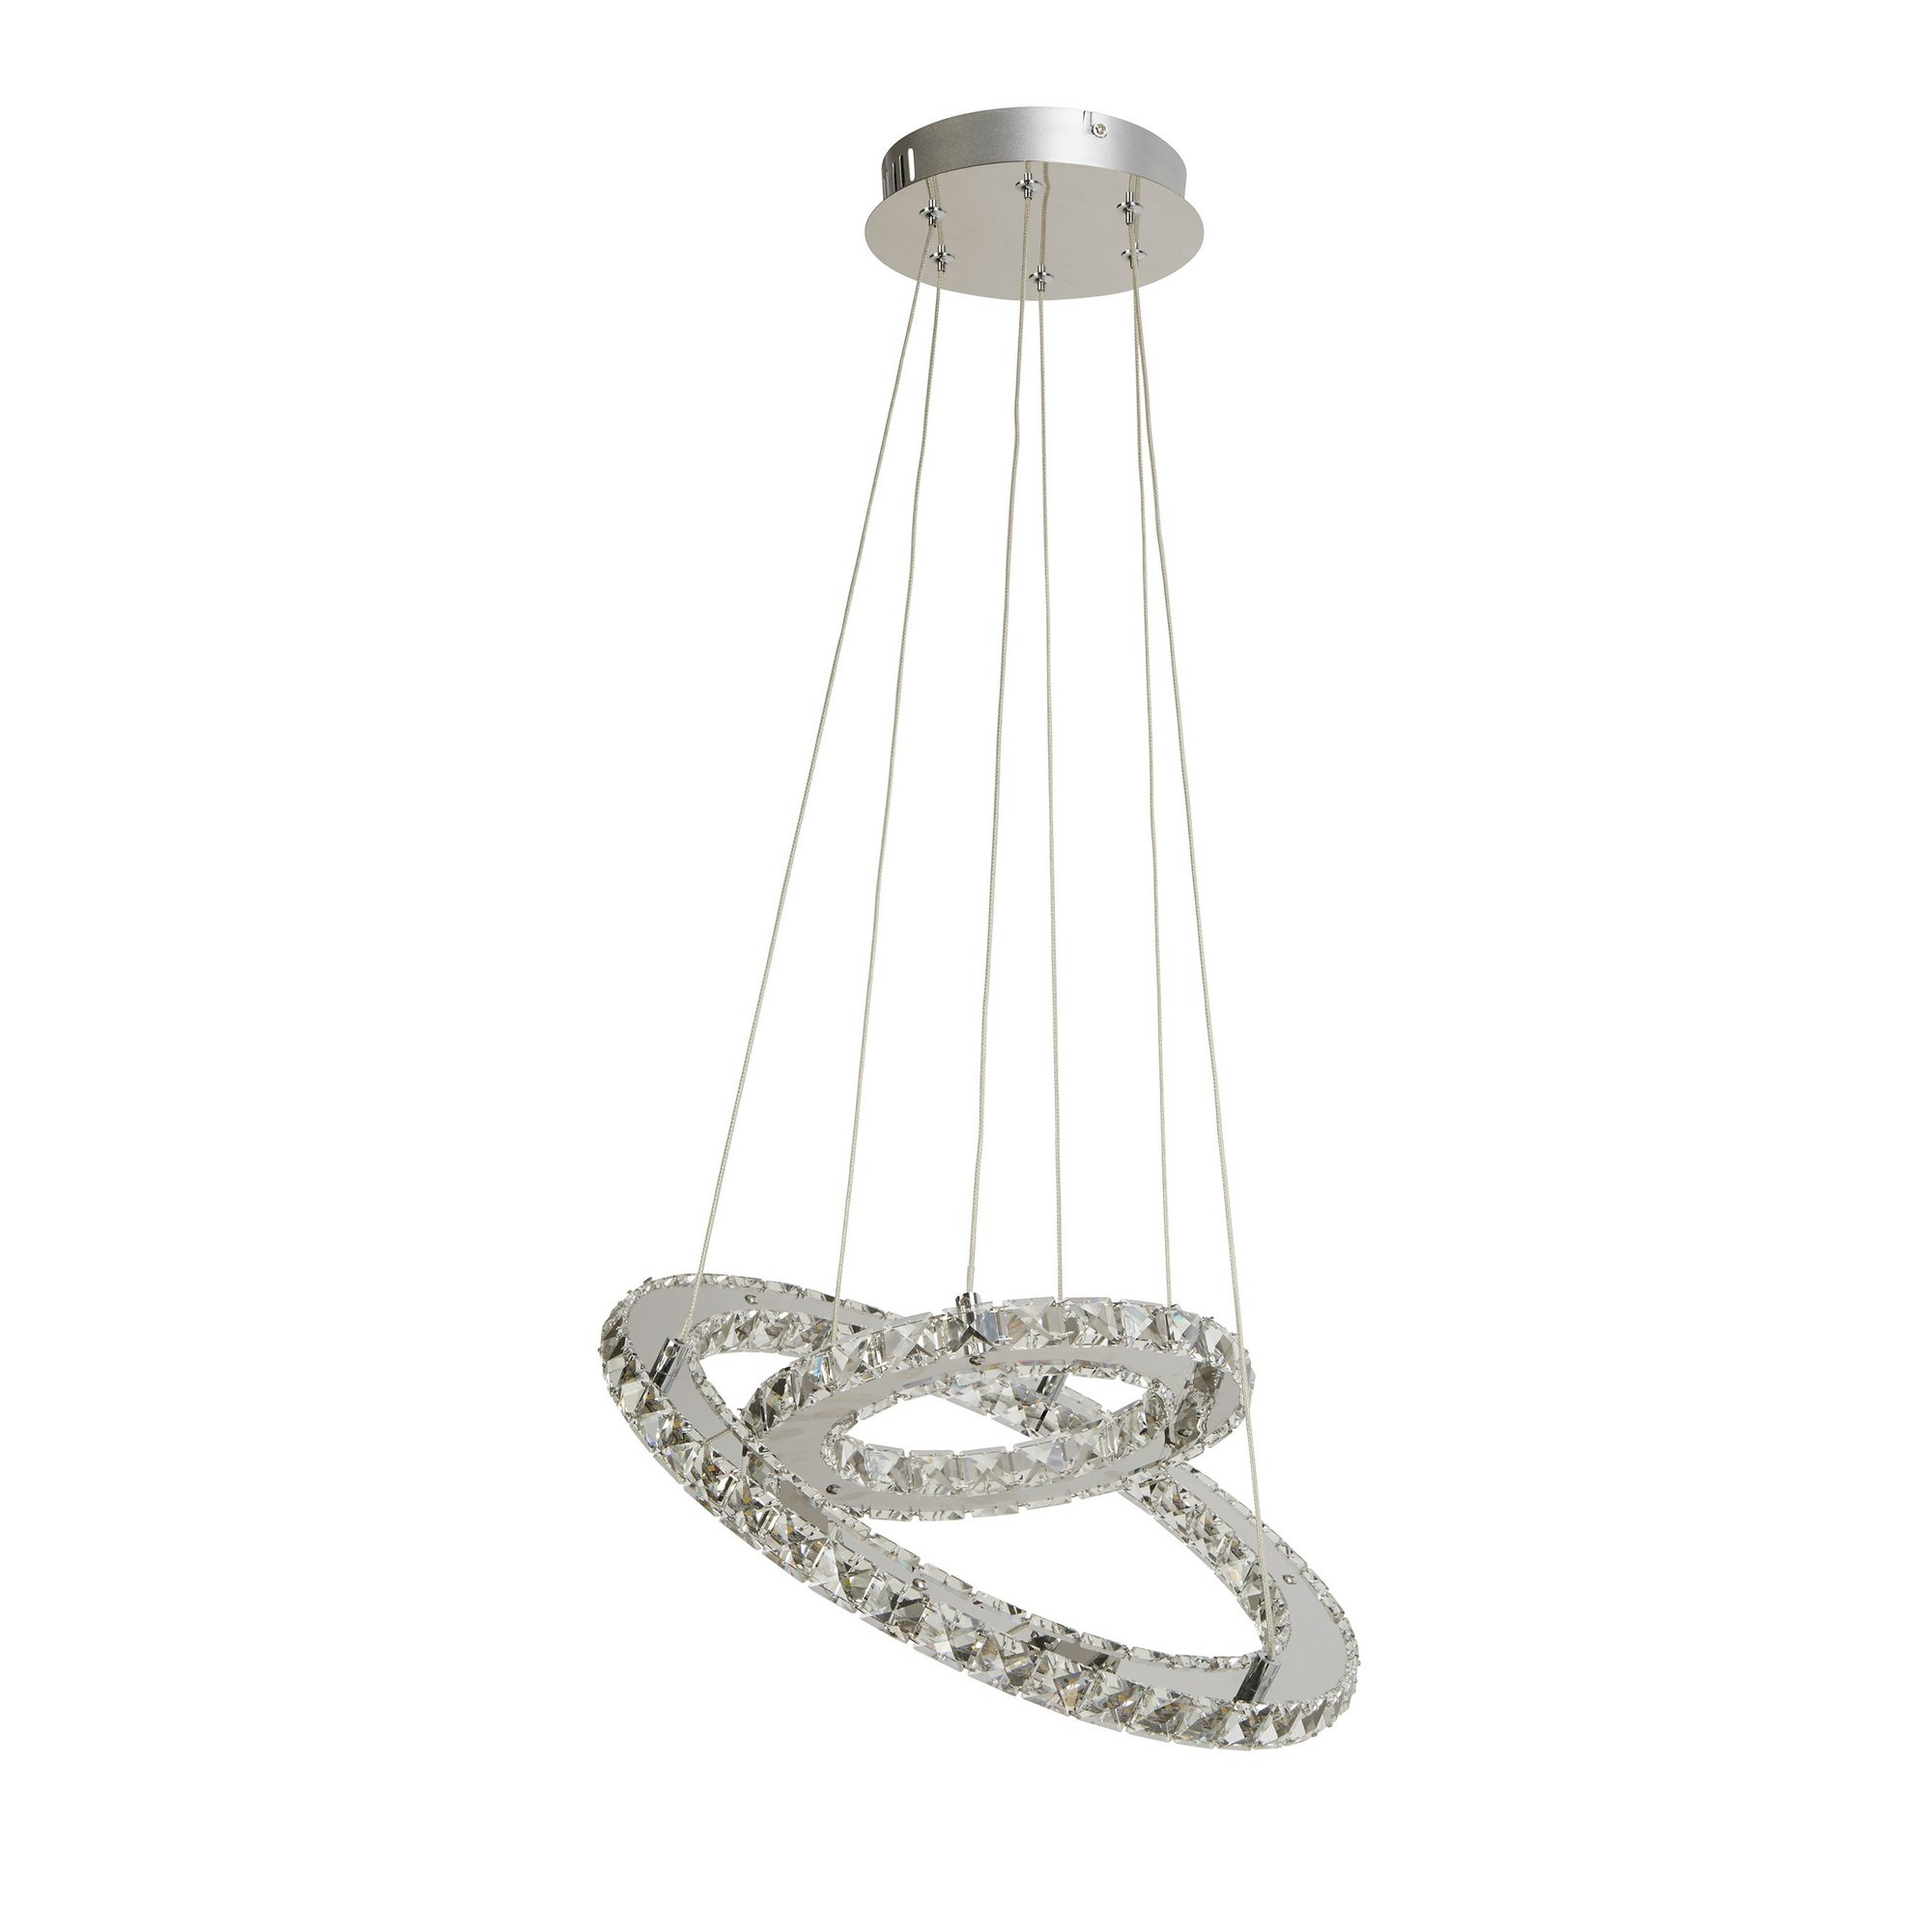 Image of 2 Ring LED Ceiling Light